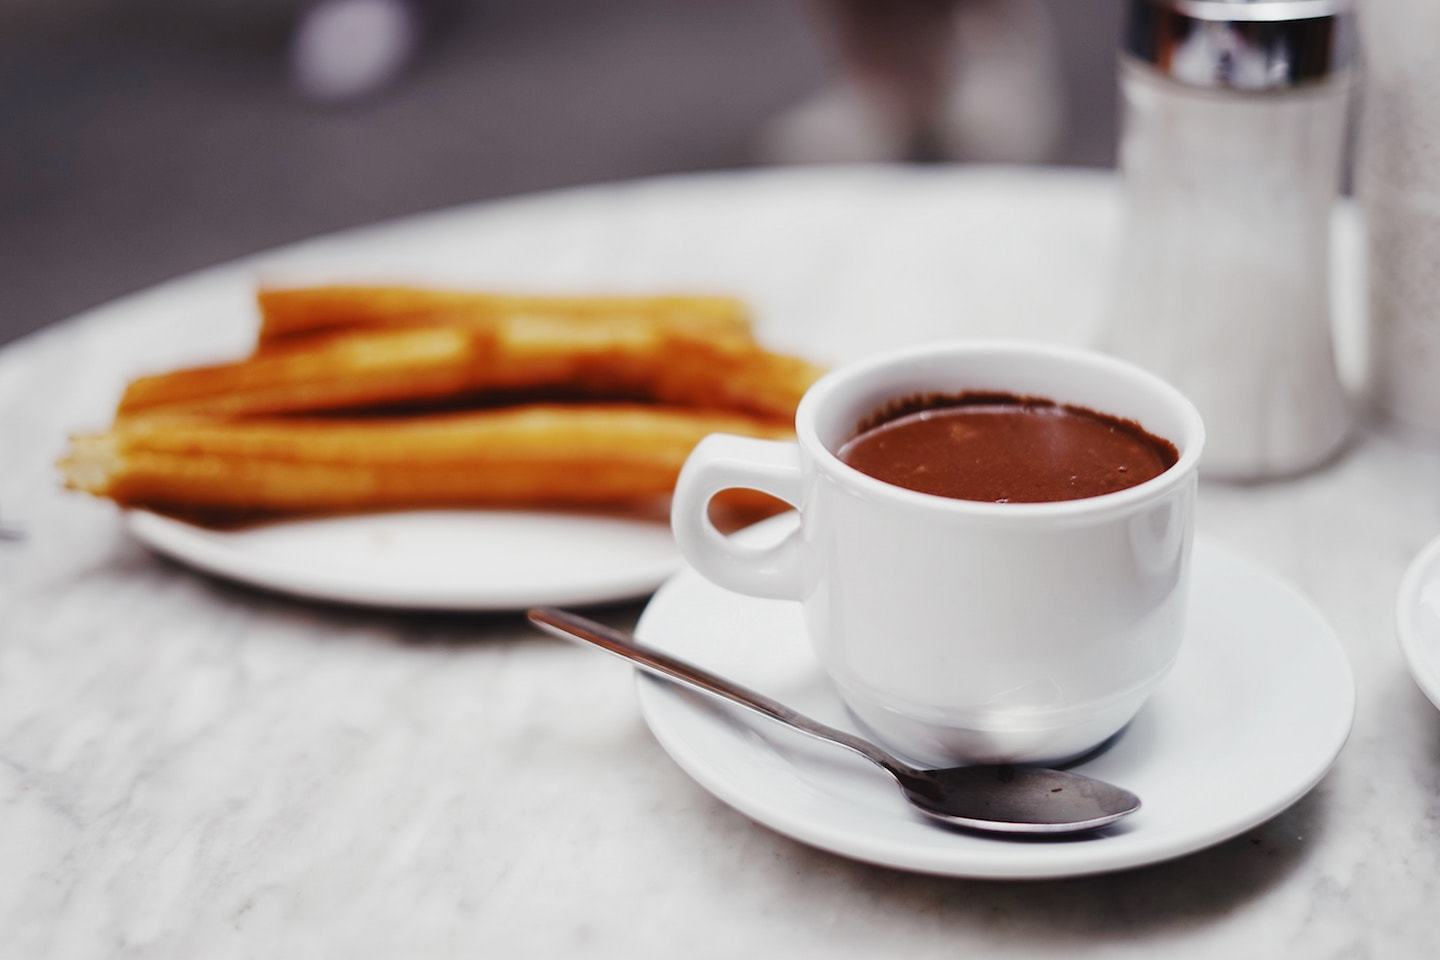 cup of chocolate with churros in the background